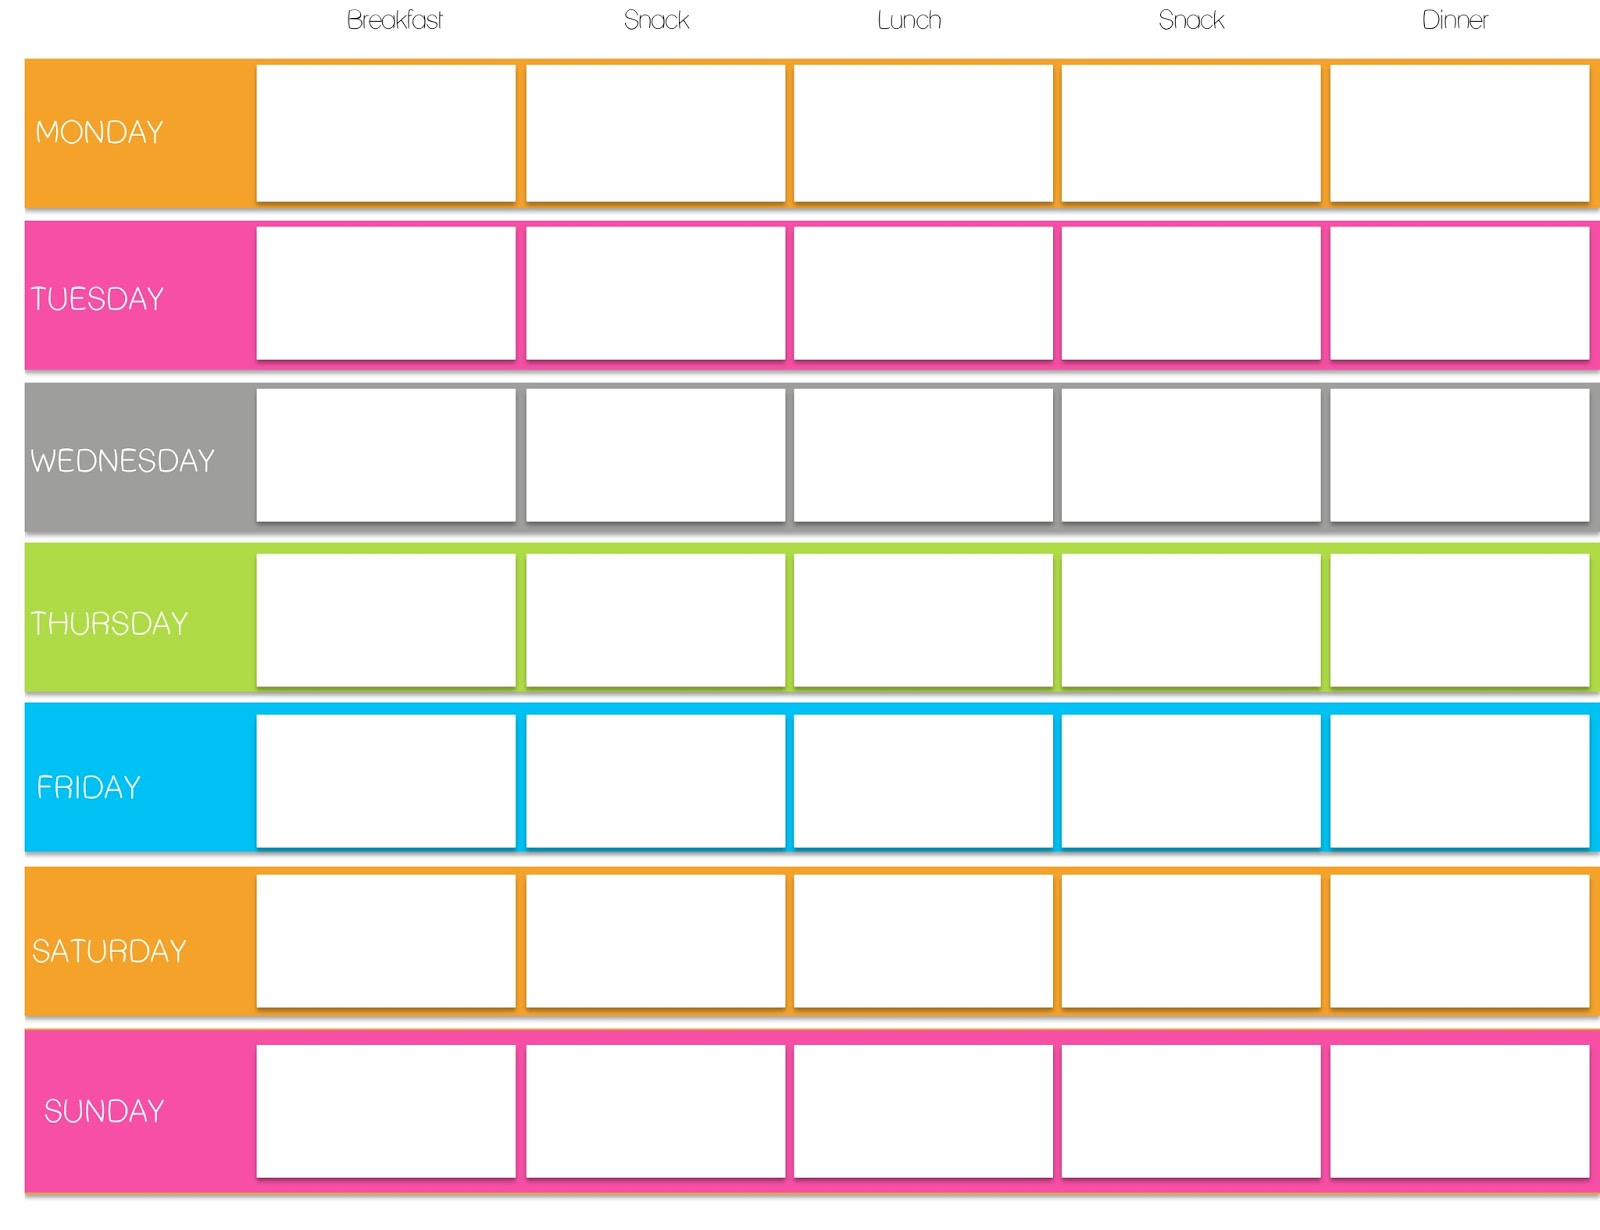 This Is What I Use For My Daily TIU Meal Planners And Food Logs Weekly Exercise Log Sheet By Sparkunder24